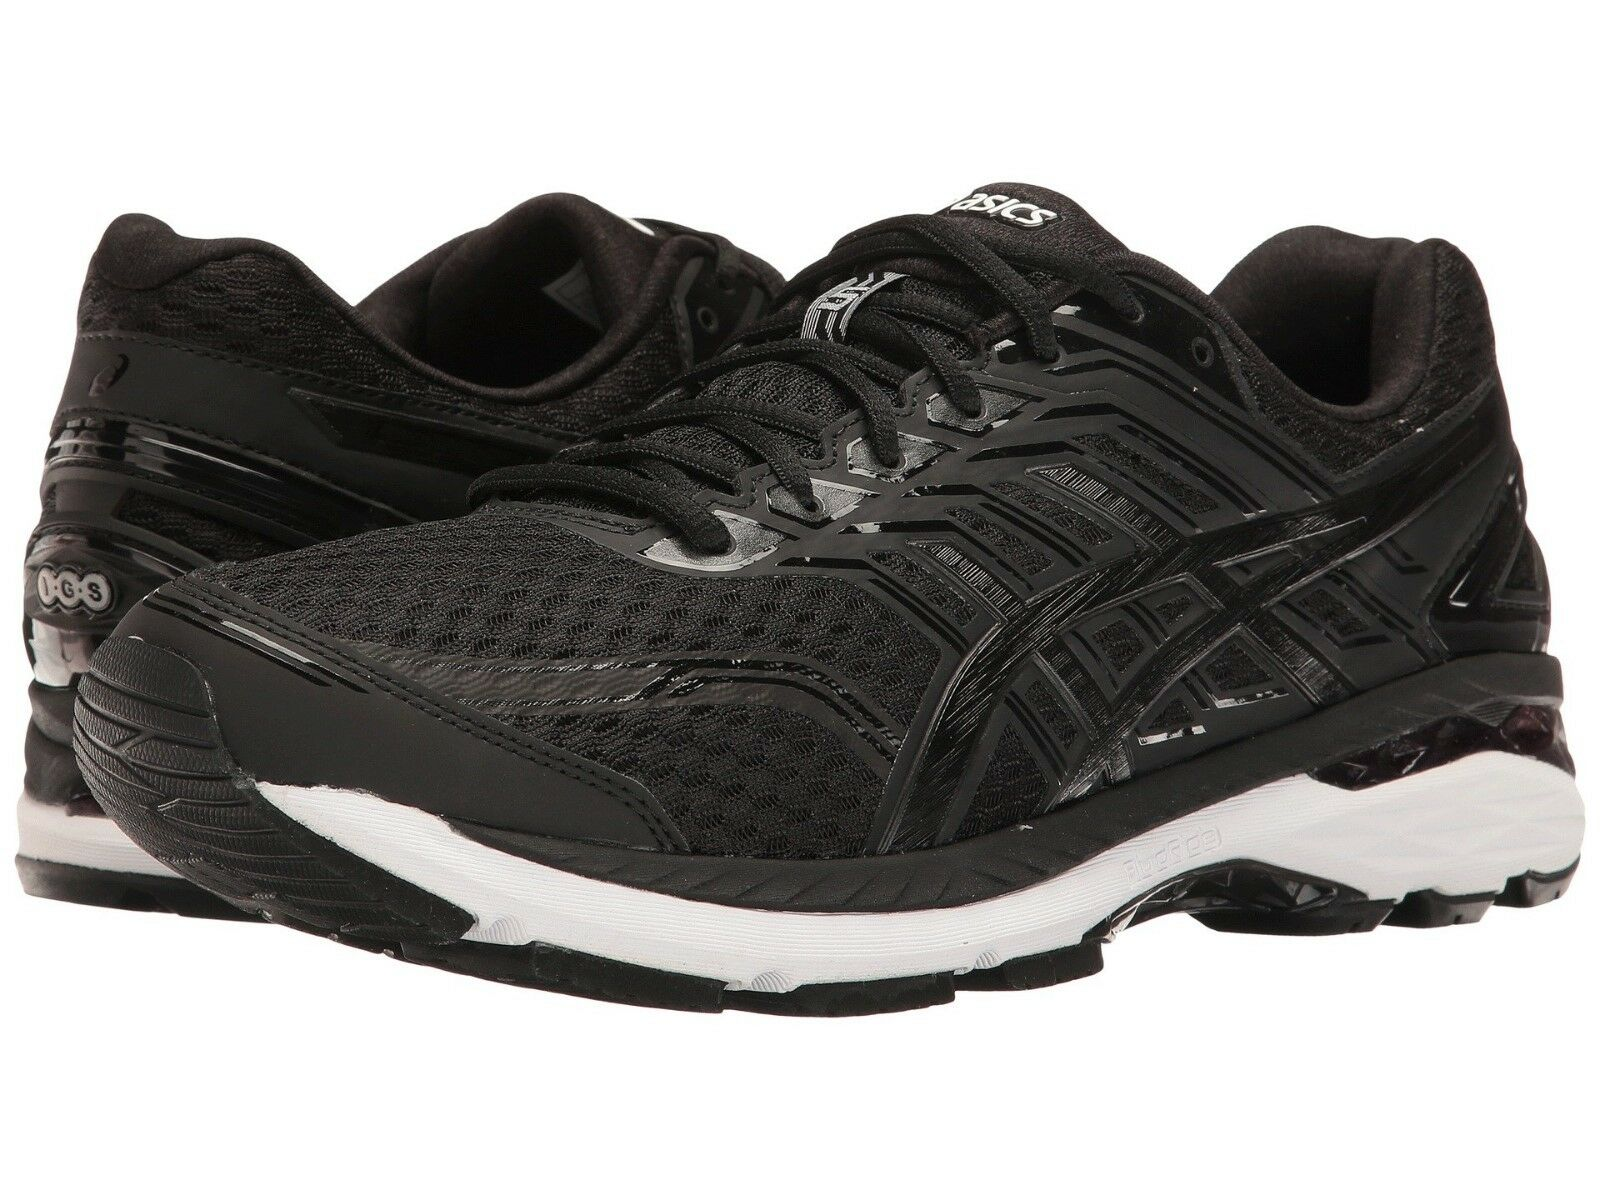 NEW MENS ASICS GT-2000 5 RUNNING/TRAINING SHOES - 8.5 4E / WIDE AUTHENTIC